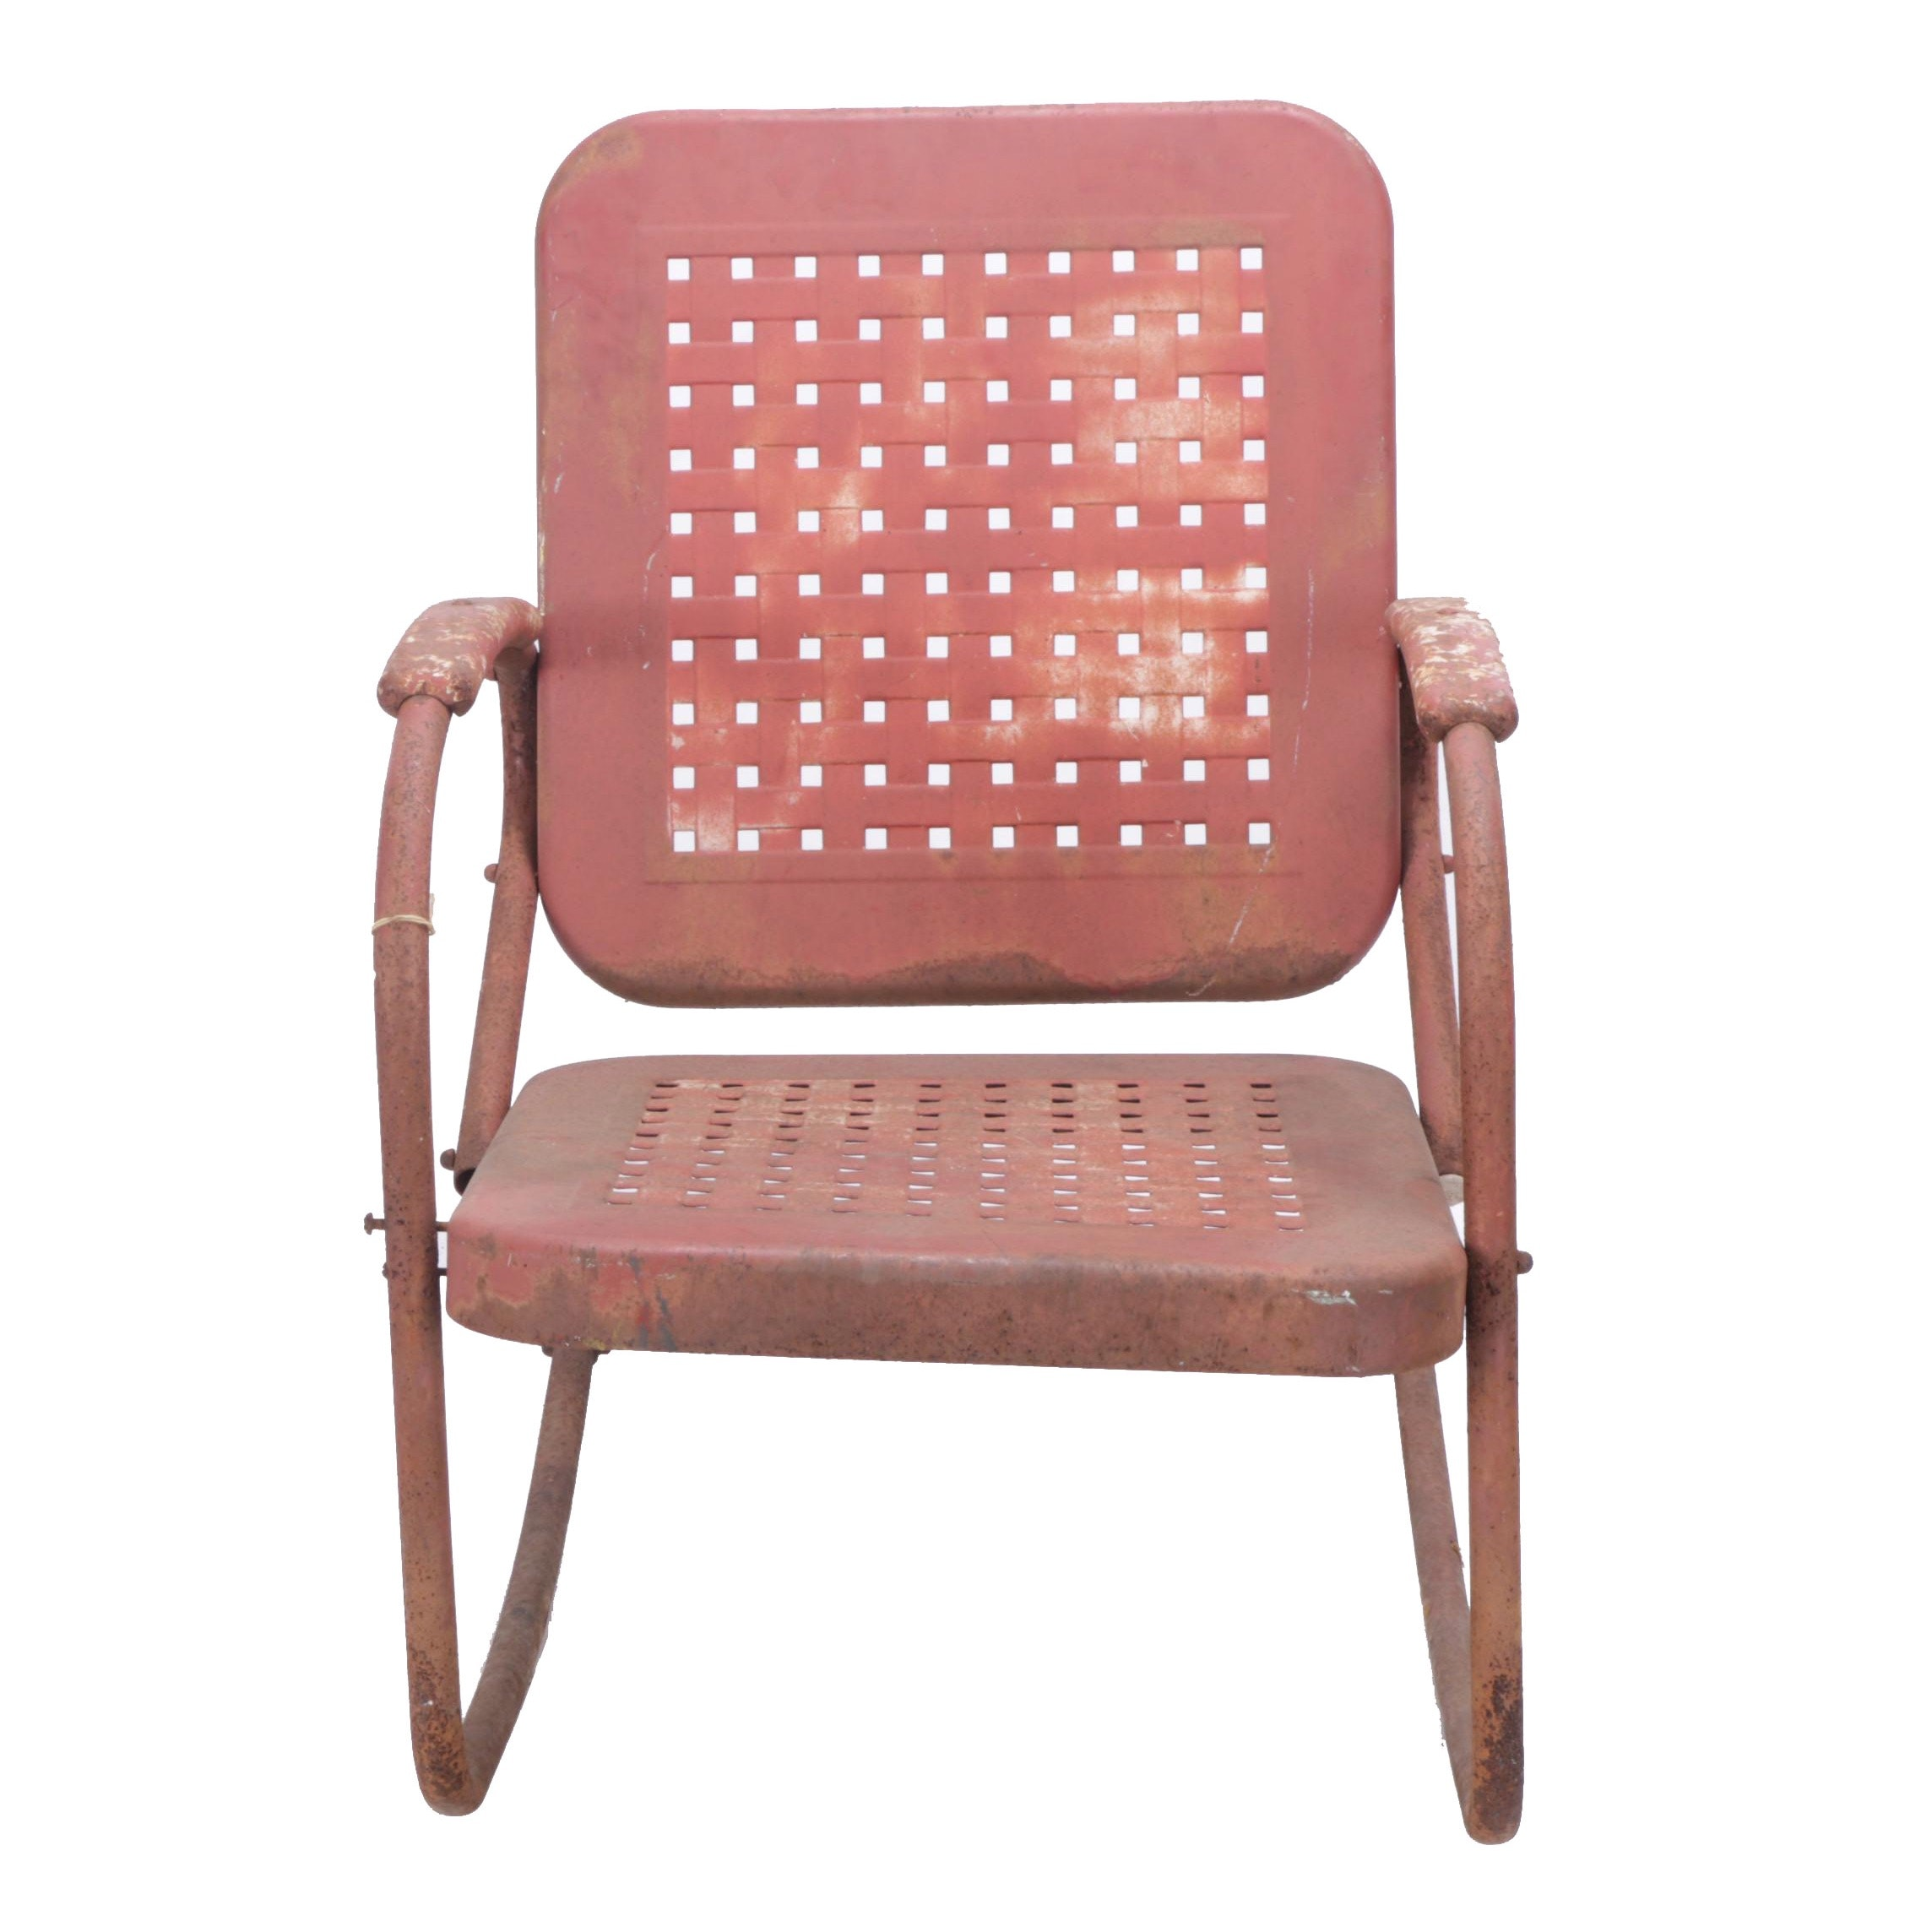 Vintage Outdoor Metal Rocking Chair